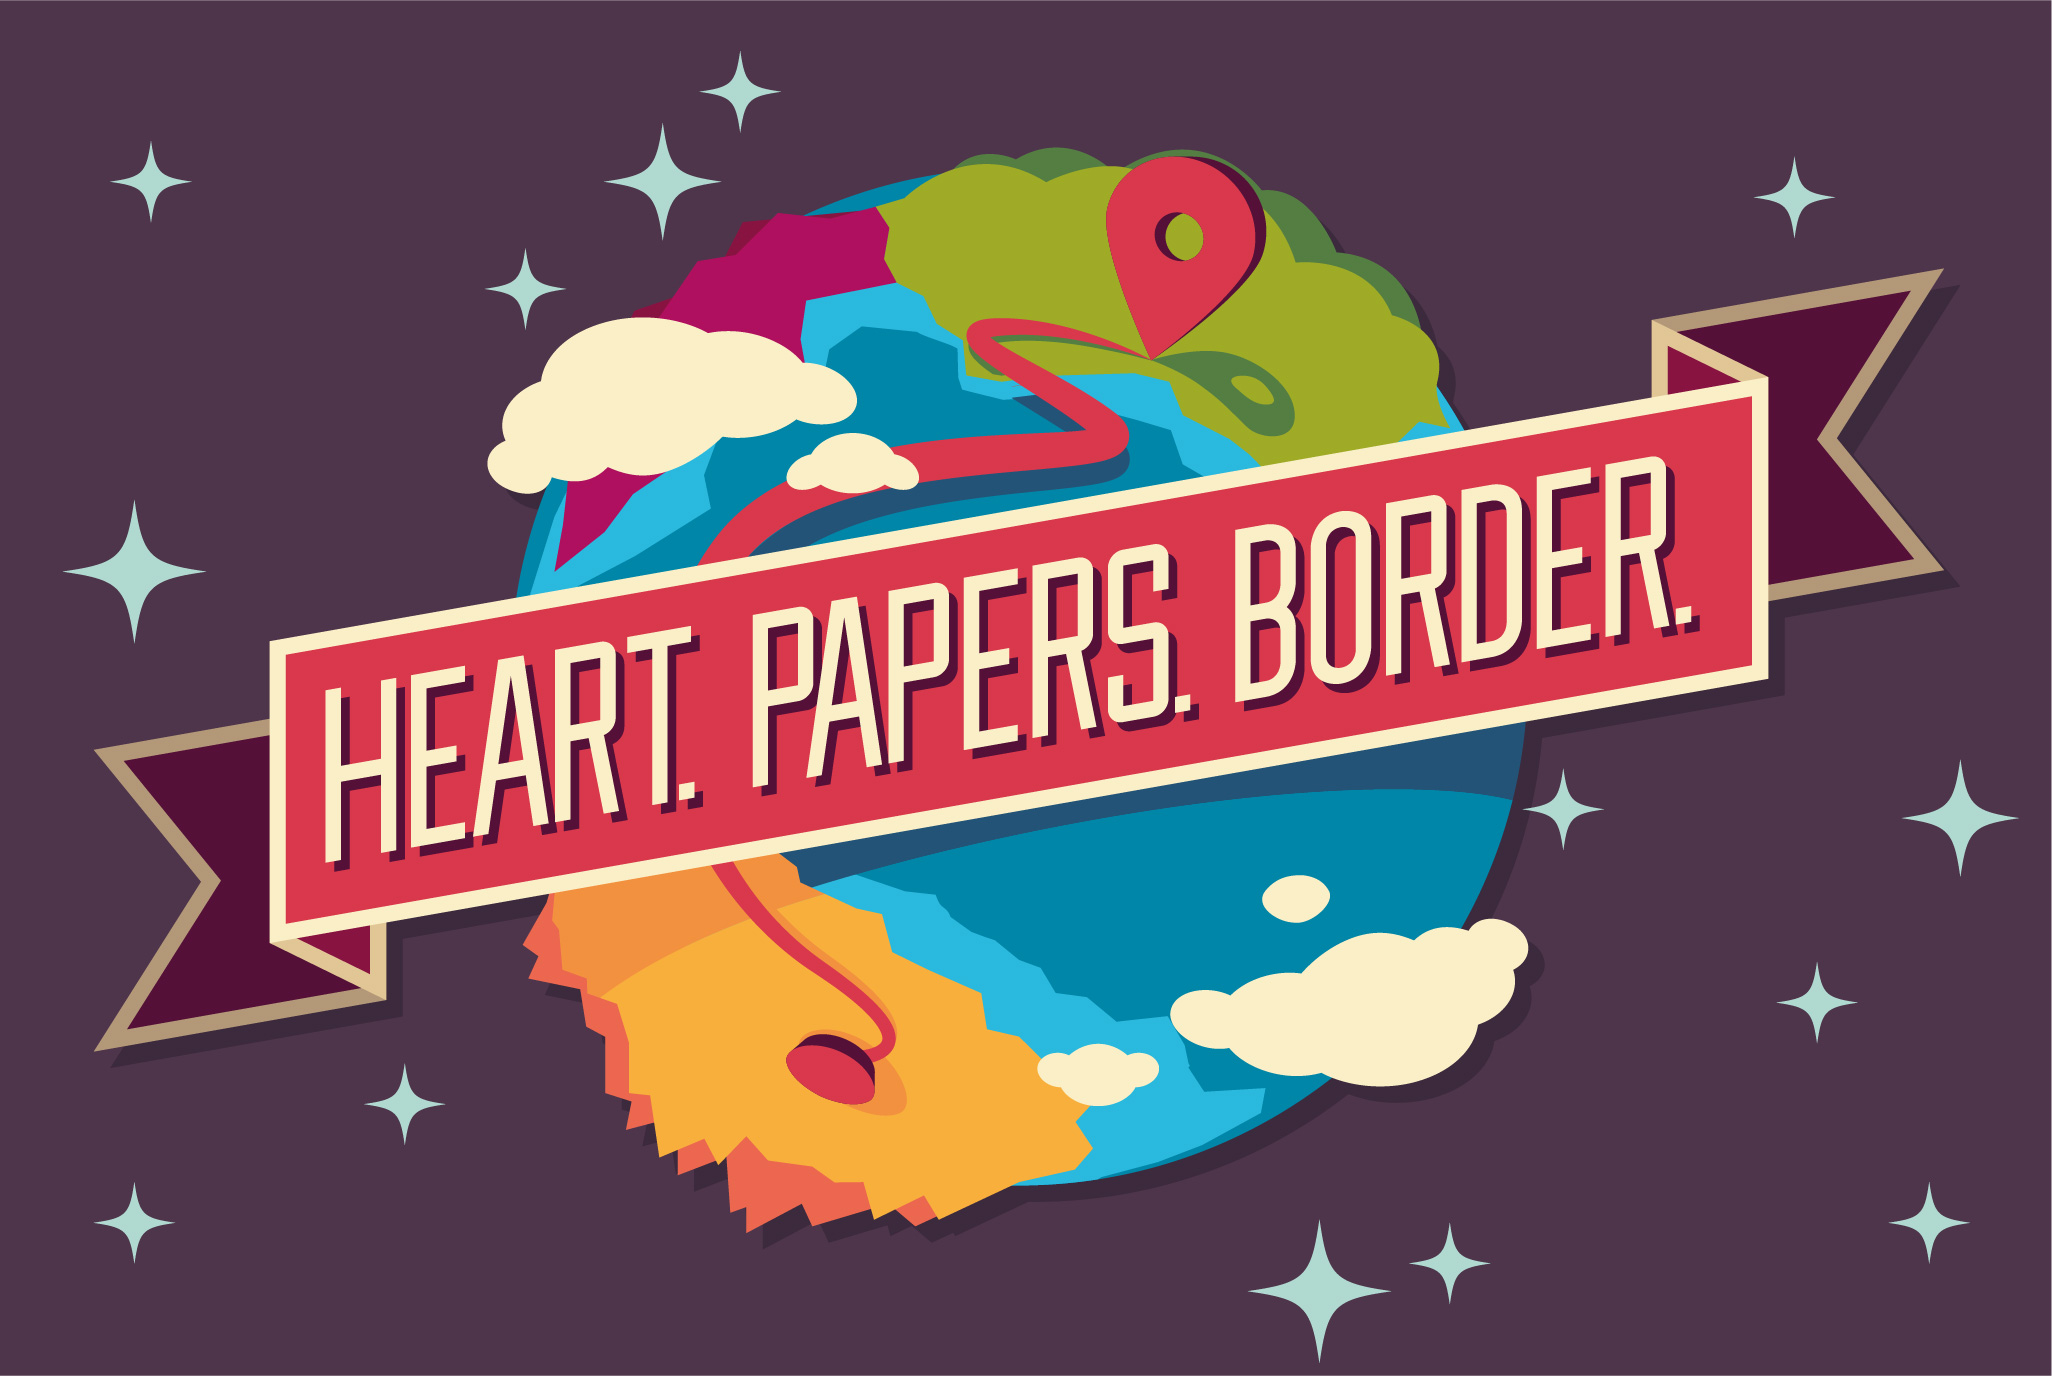 Heart.Papers.Border.